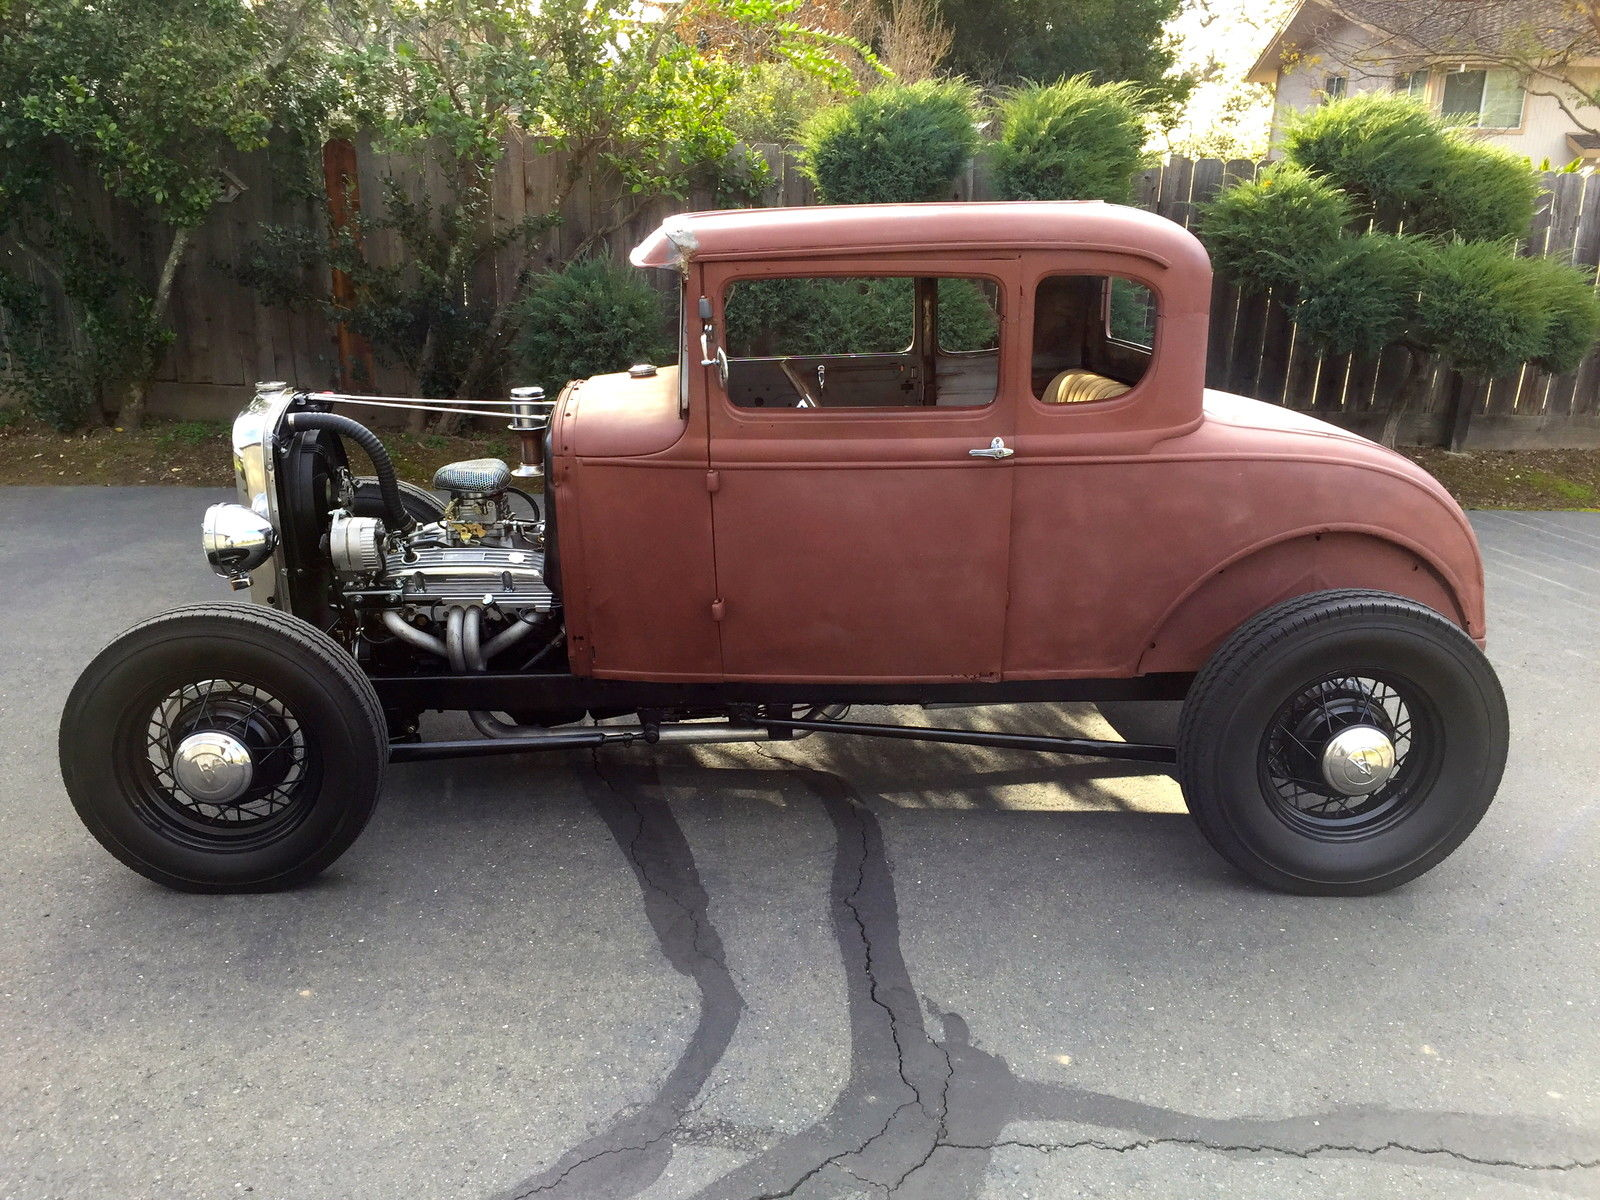 hight resolution of 1931 ford model a coupe hot rod v8 california car 1928 1929 19301930 ford model a